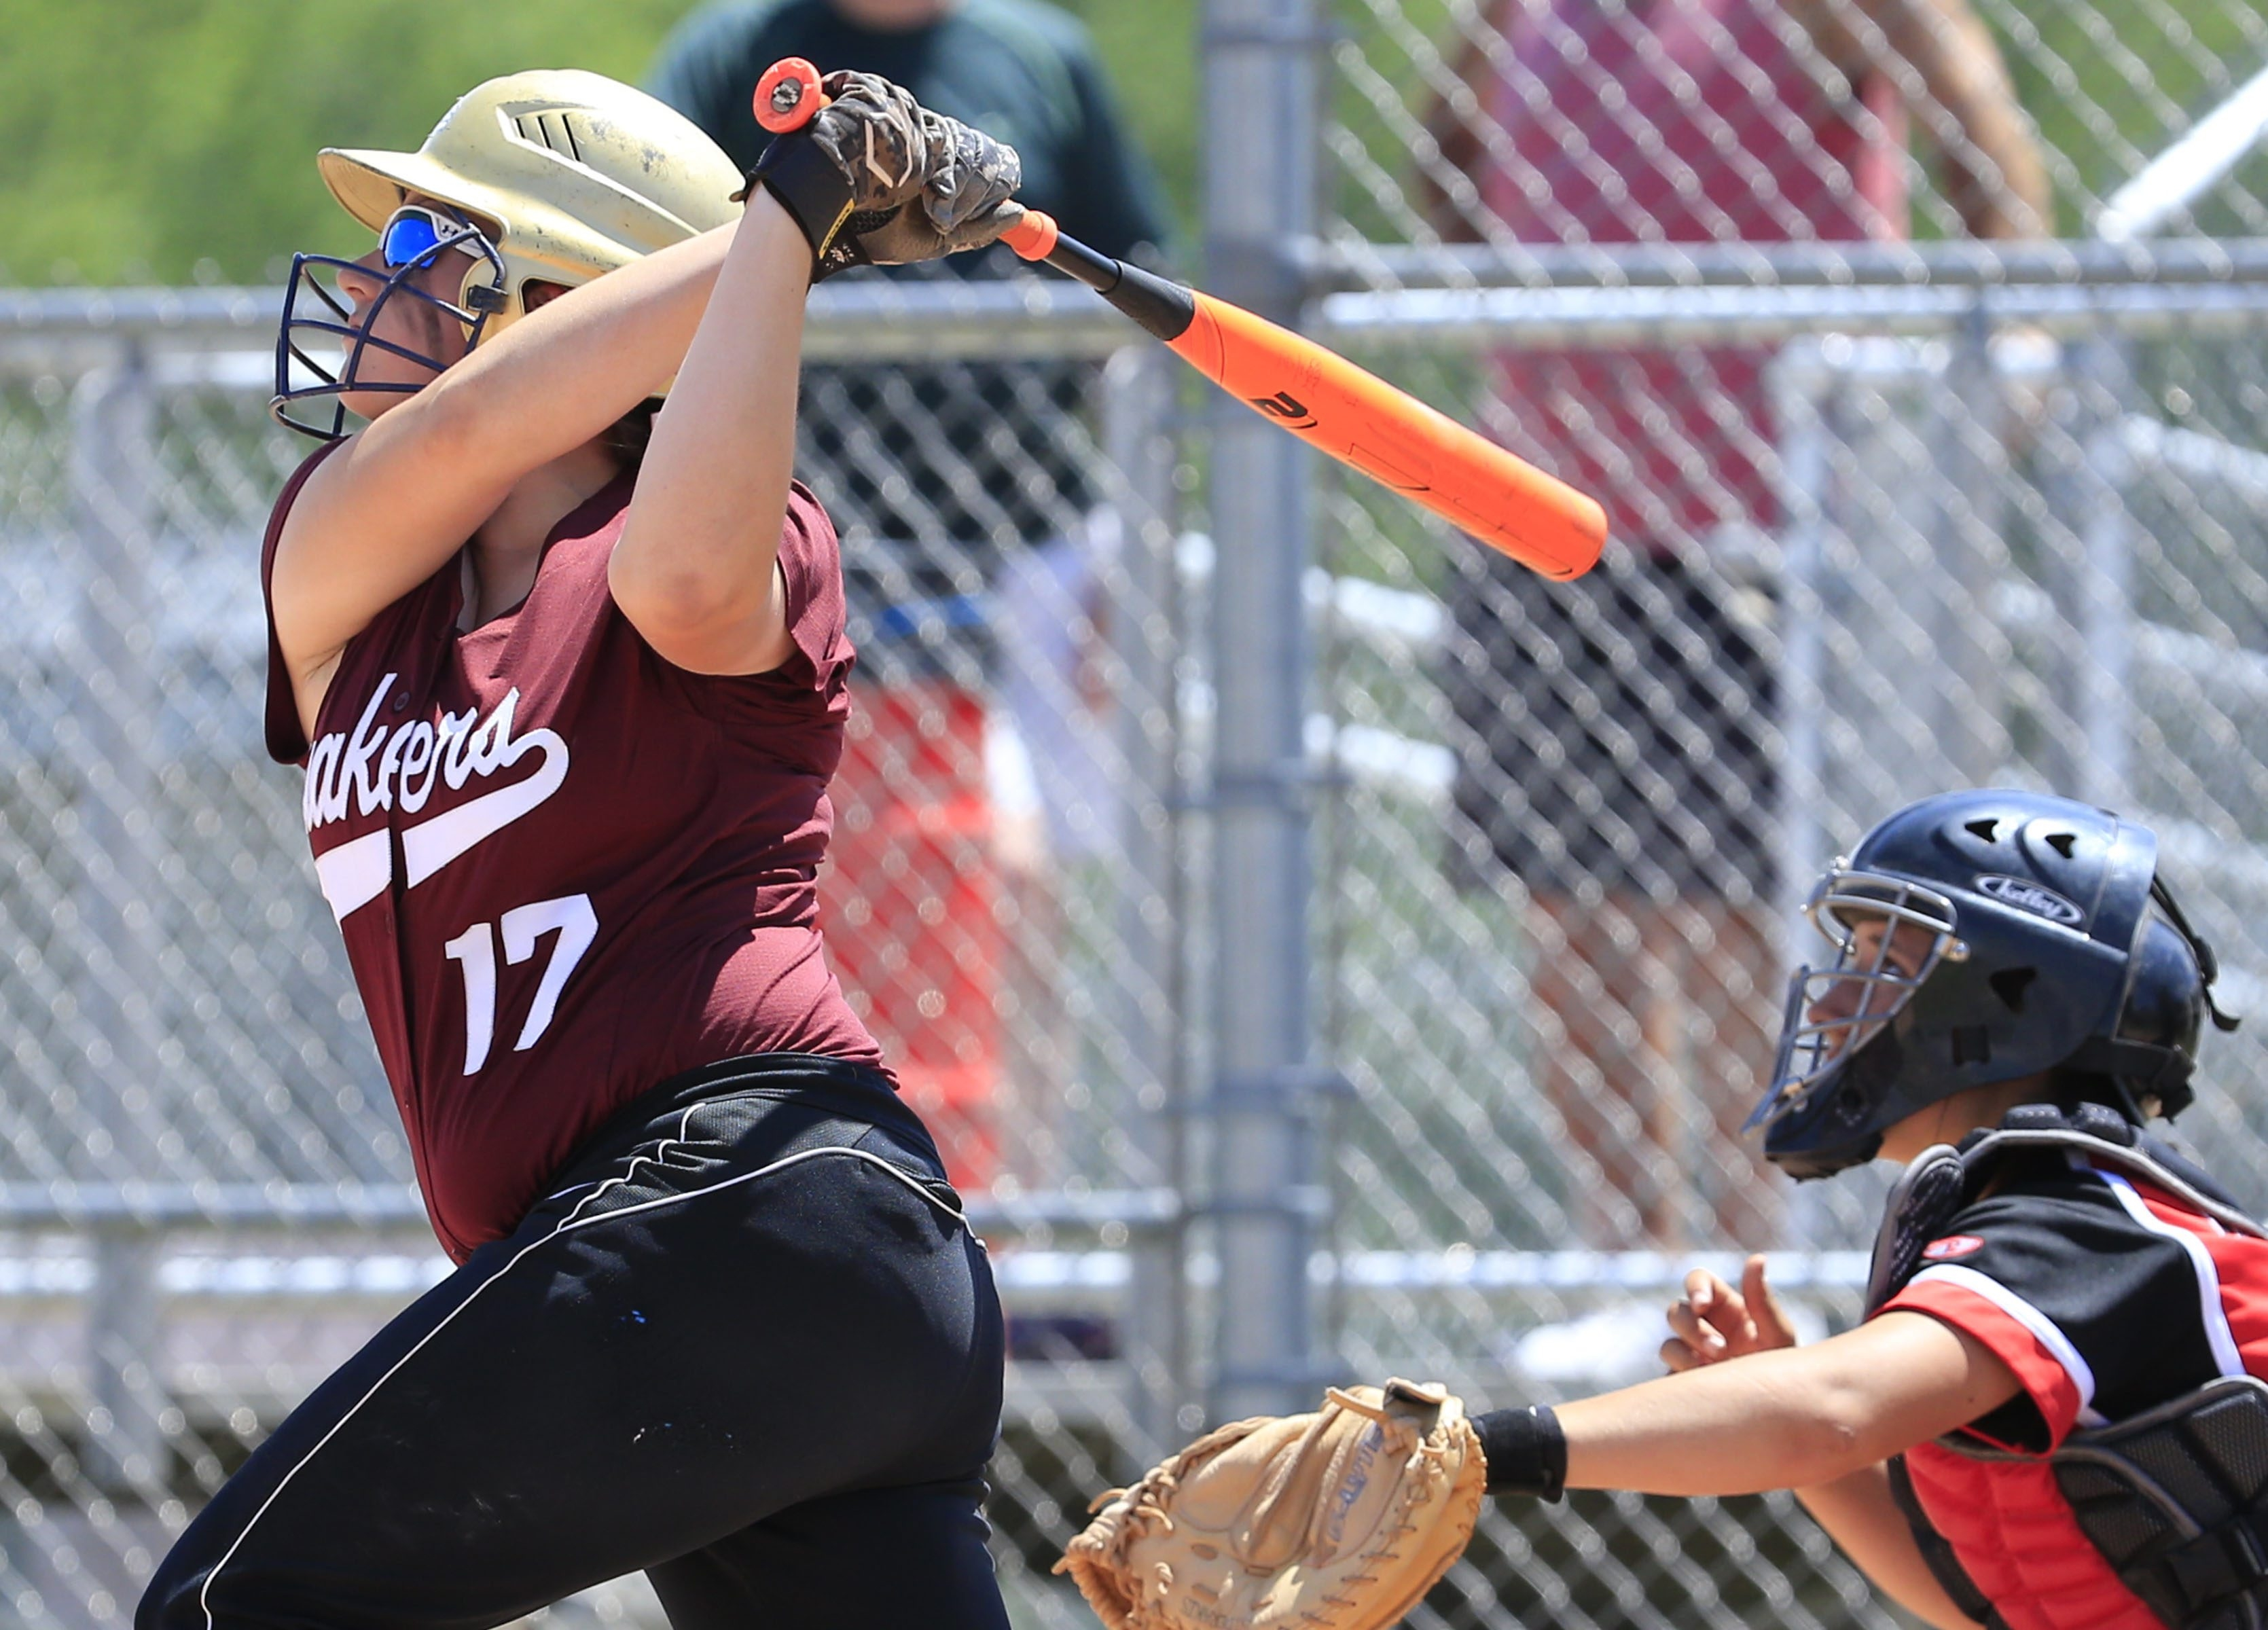 Orchard Park's Katie Weimer triples against Clarence to help the Quakers win the Class AA Section VI softball title on Saturday.